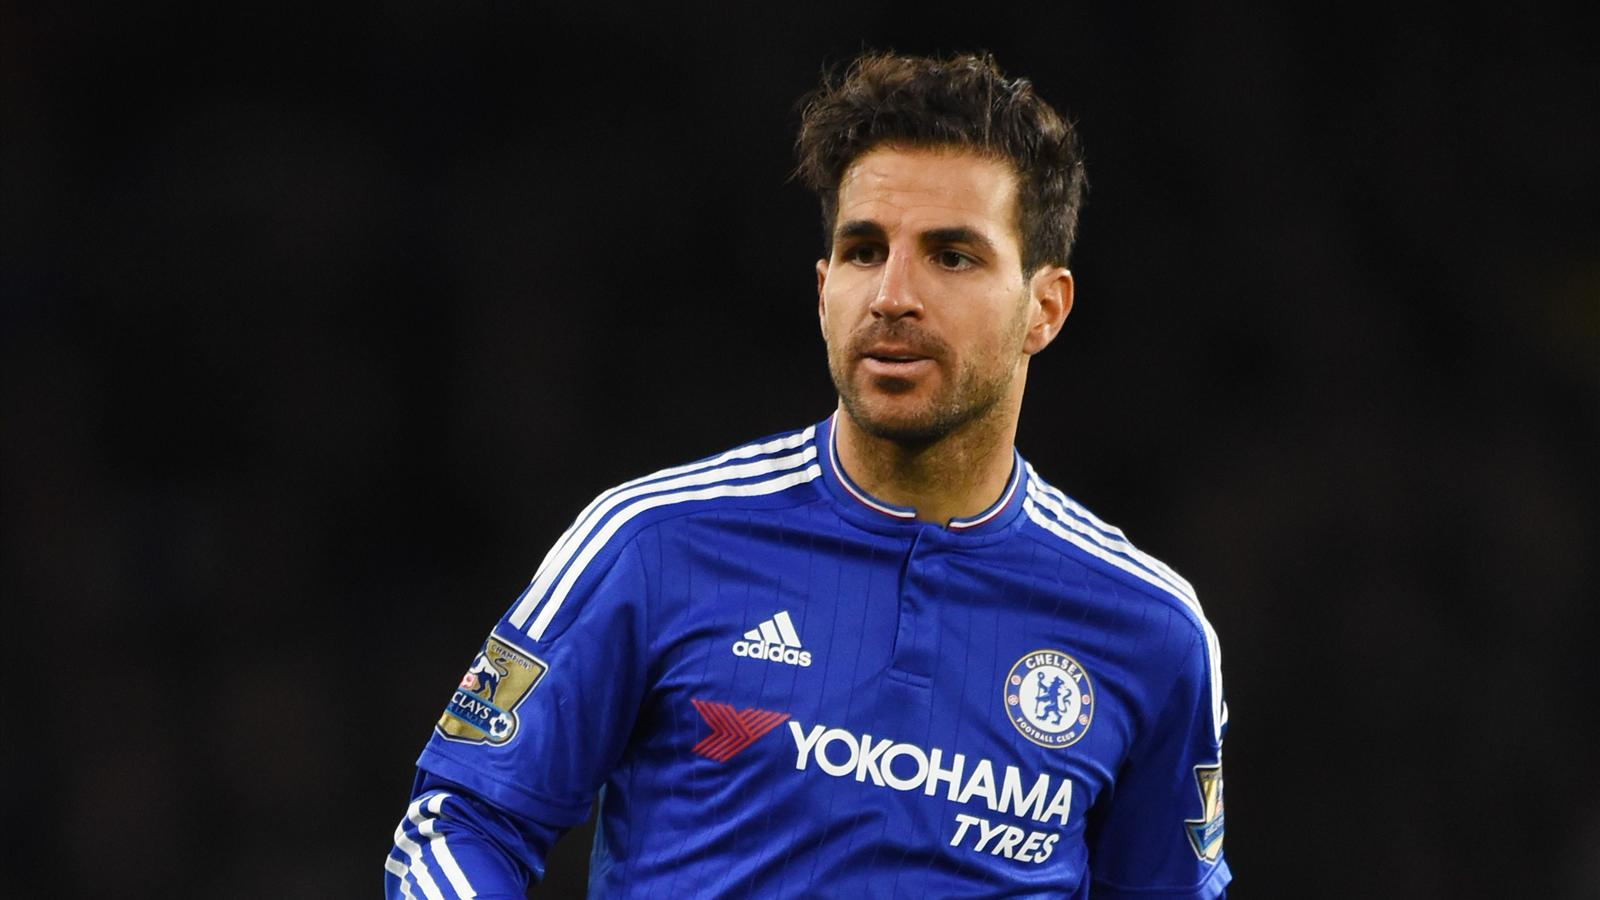 I Joined Chelsea Because of Mourinho - Fabregas